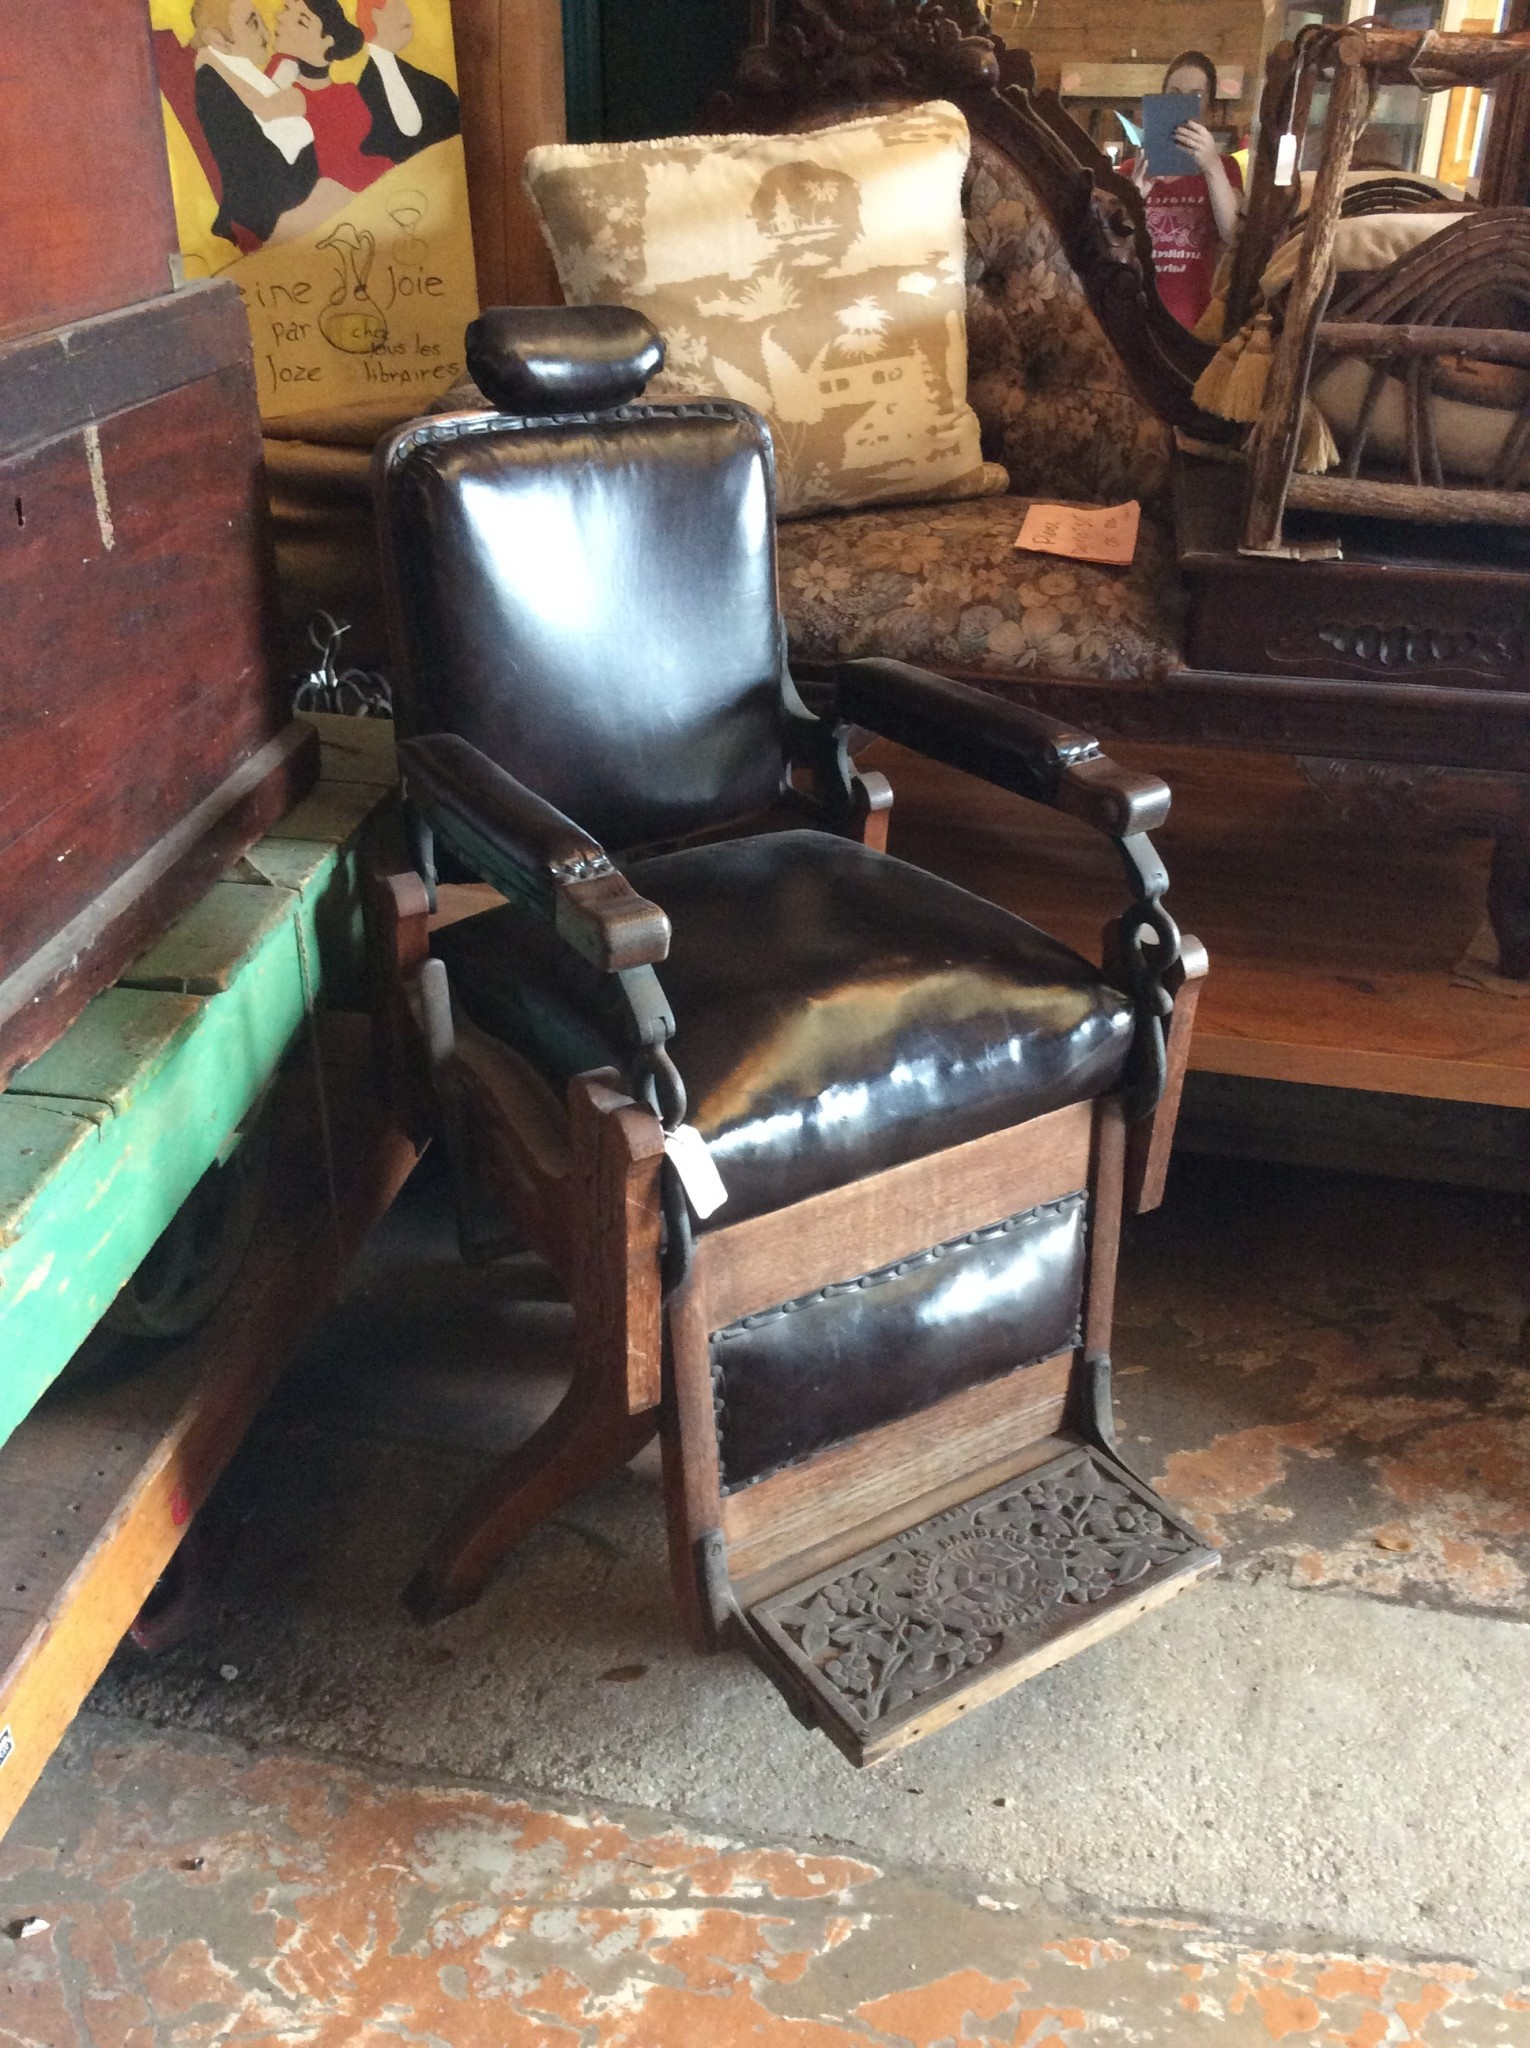 Turn Of The Century Koken Barber S Chair Sarasota Architectural Salvage 1093 Central Ave Sarasota Fl 34236